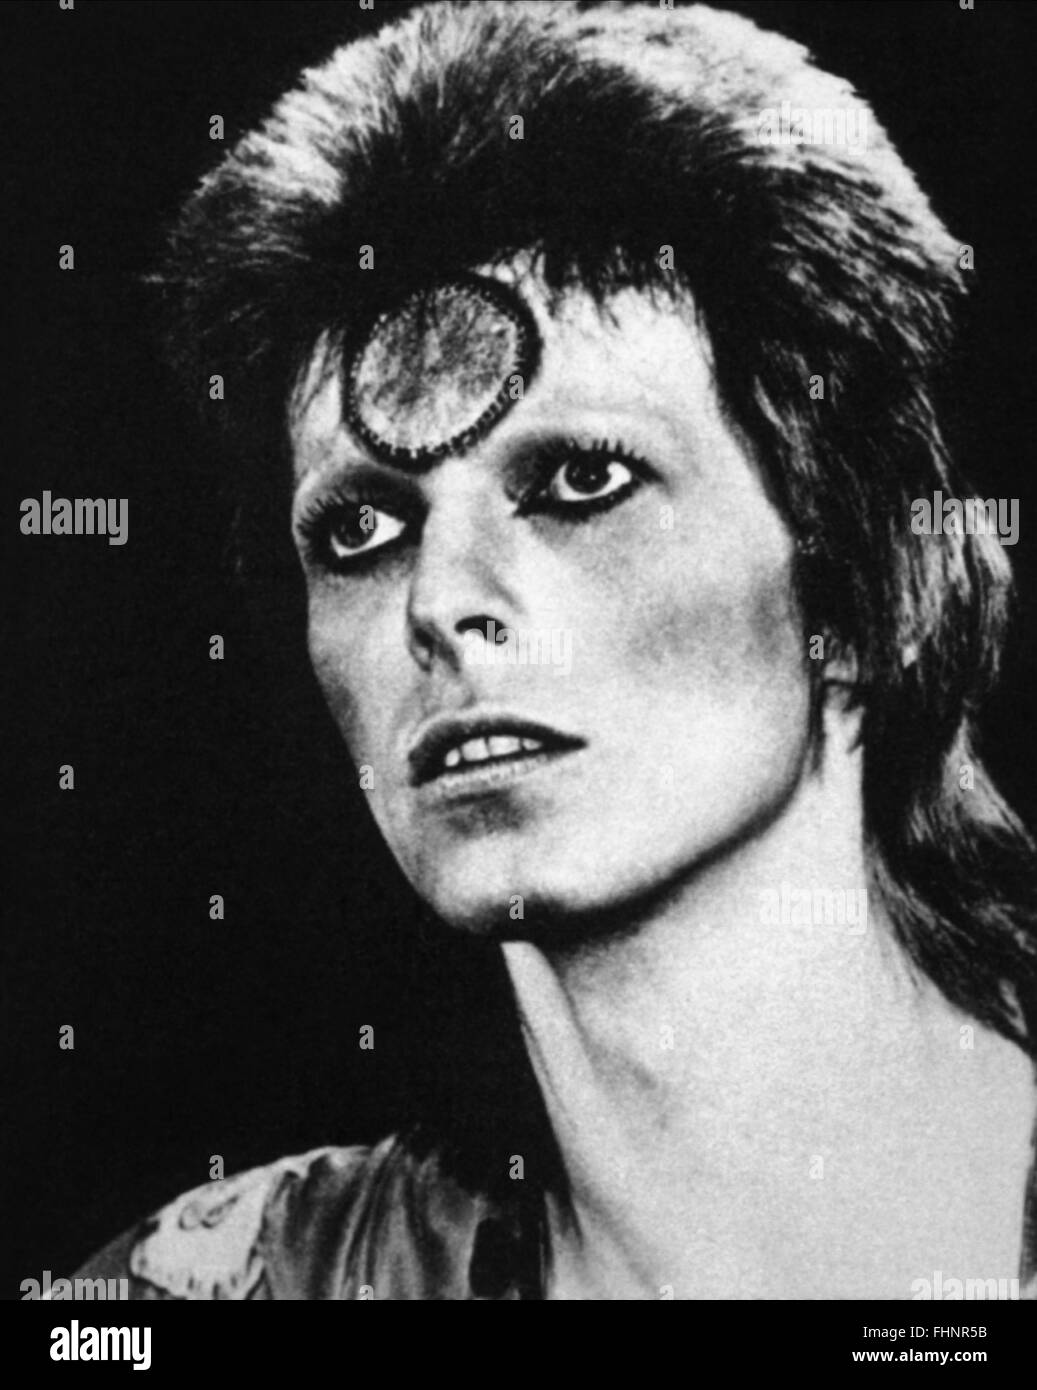 DAVID BOWIE ZIGGY STARDUST AND THE SPIDERS FROM MARS (1973 Stock